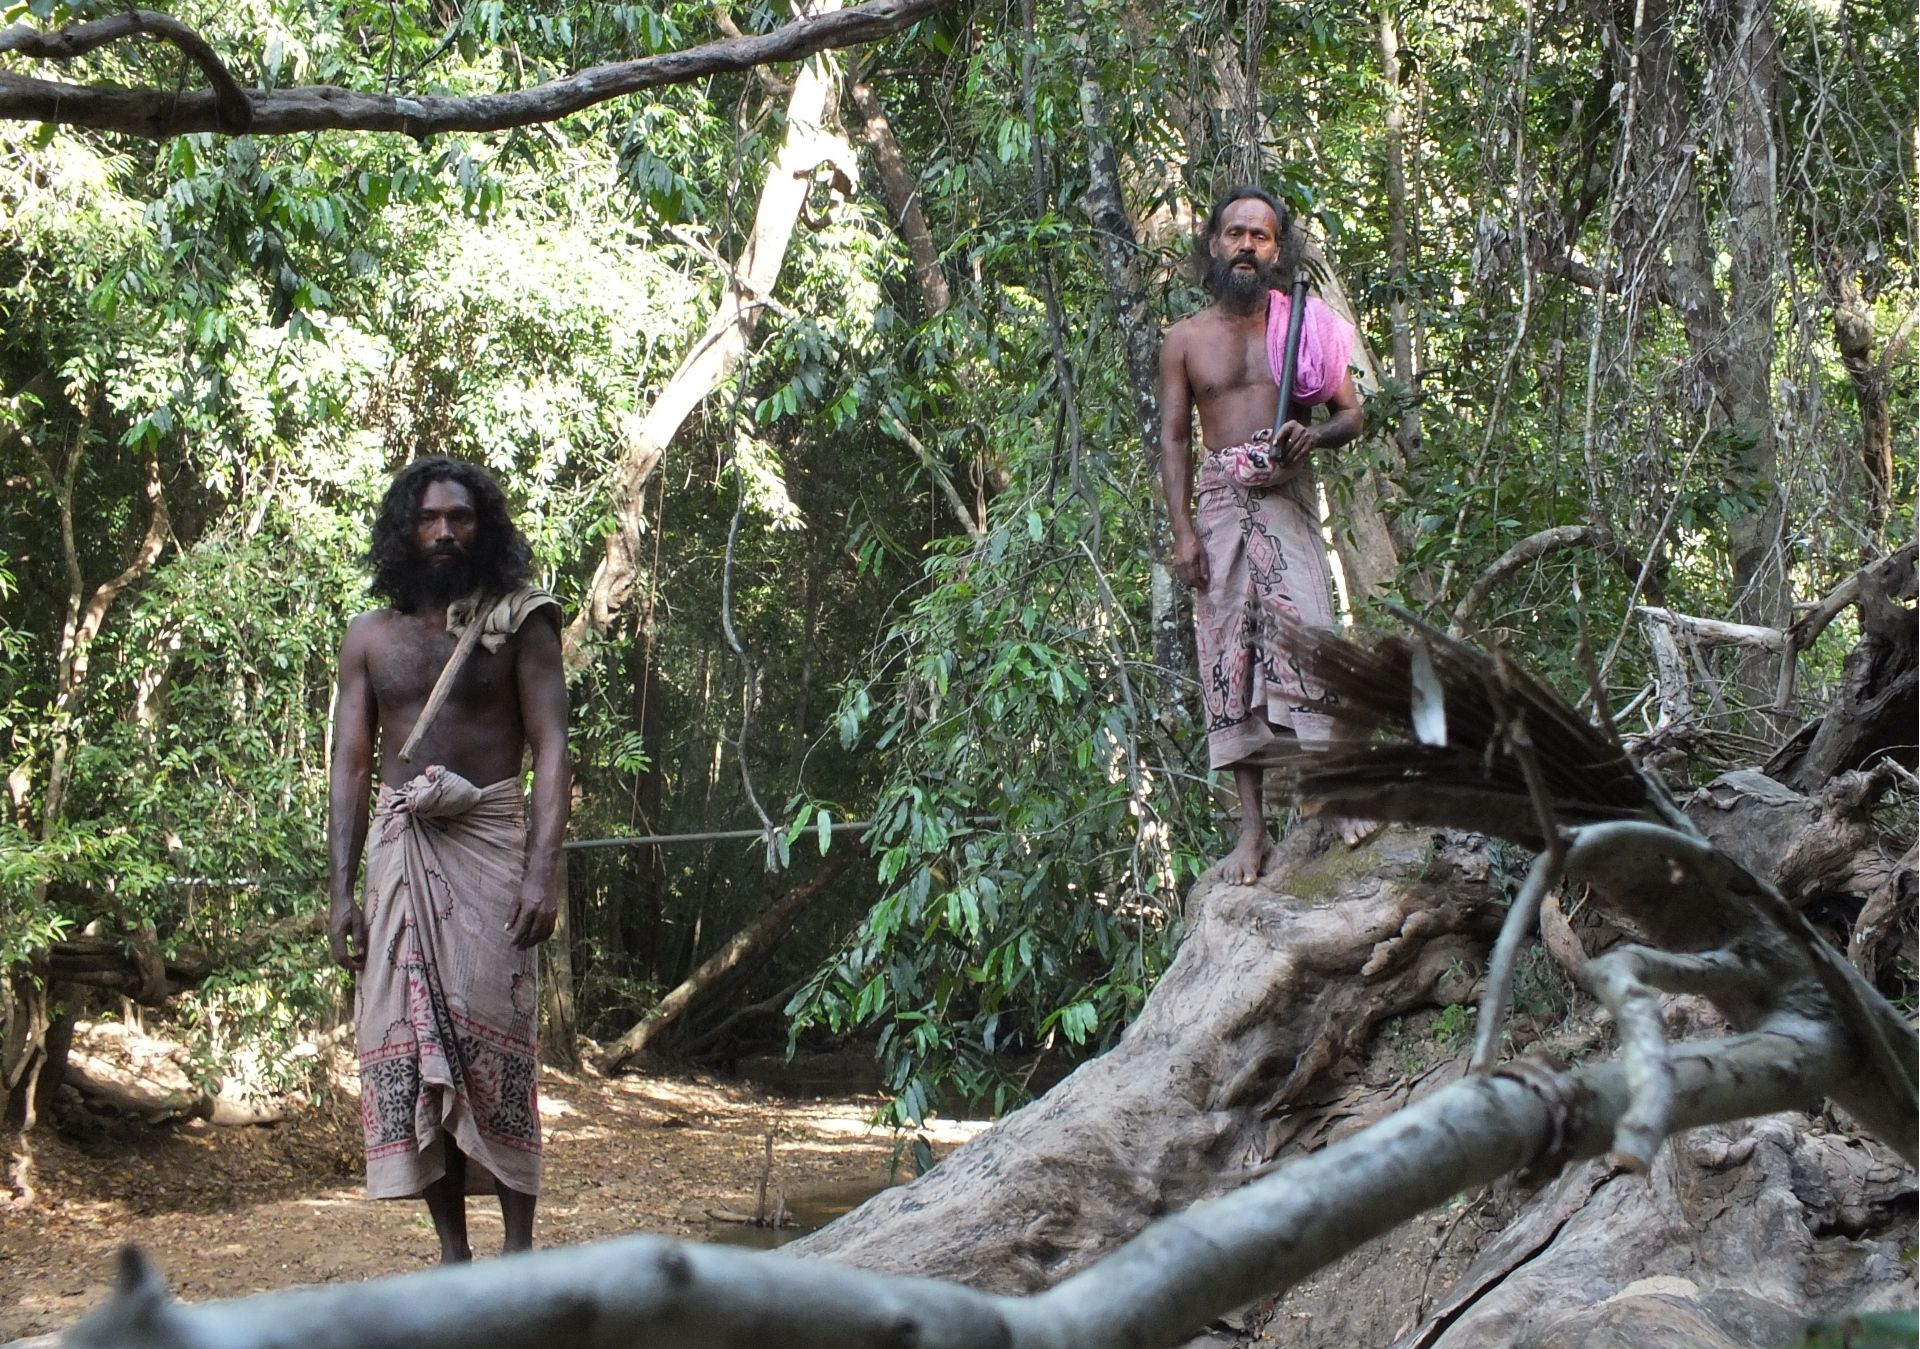 The friendly indigenous Vedda people